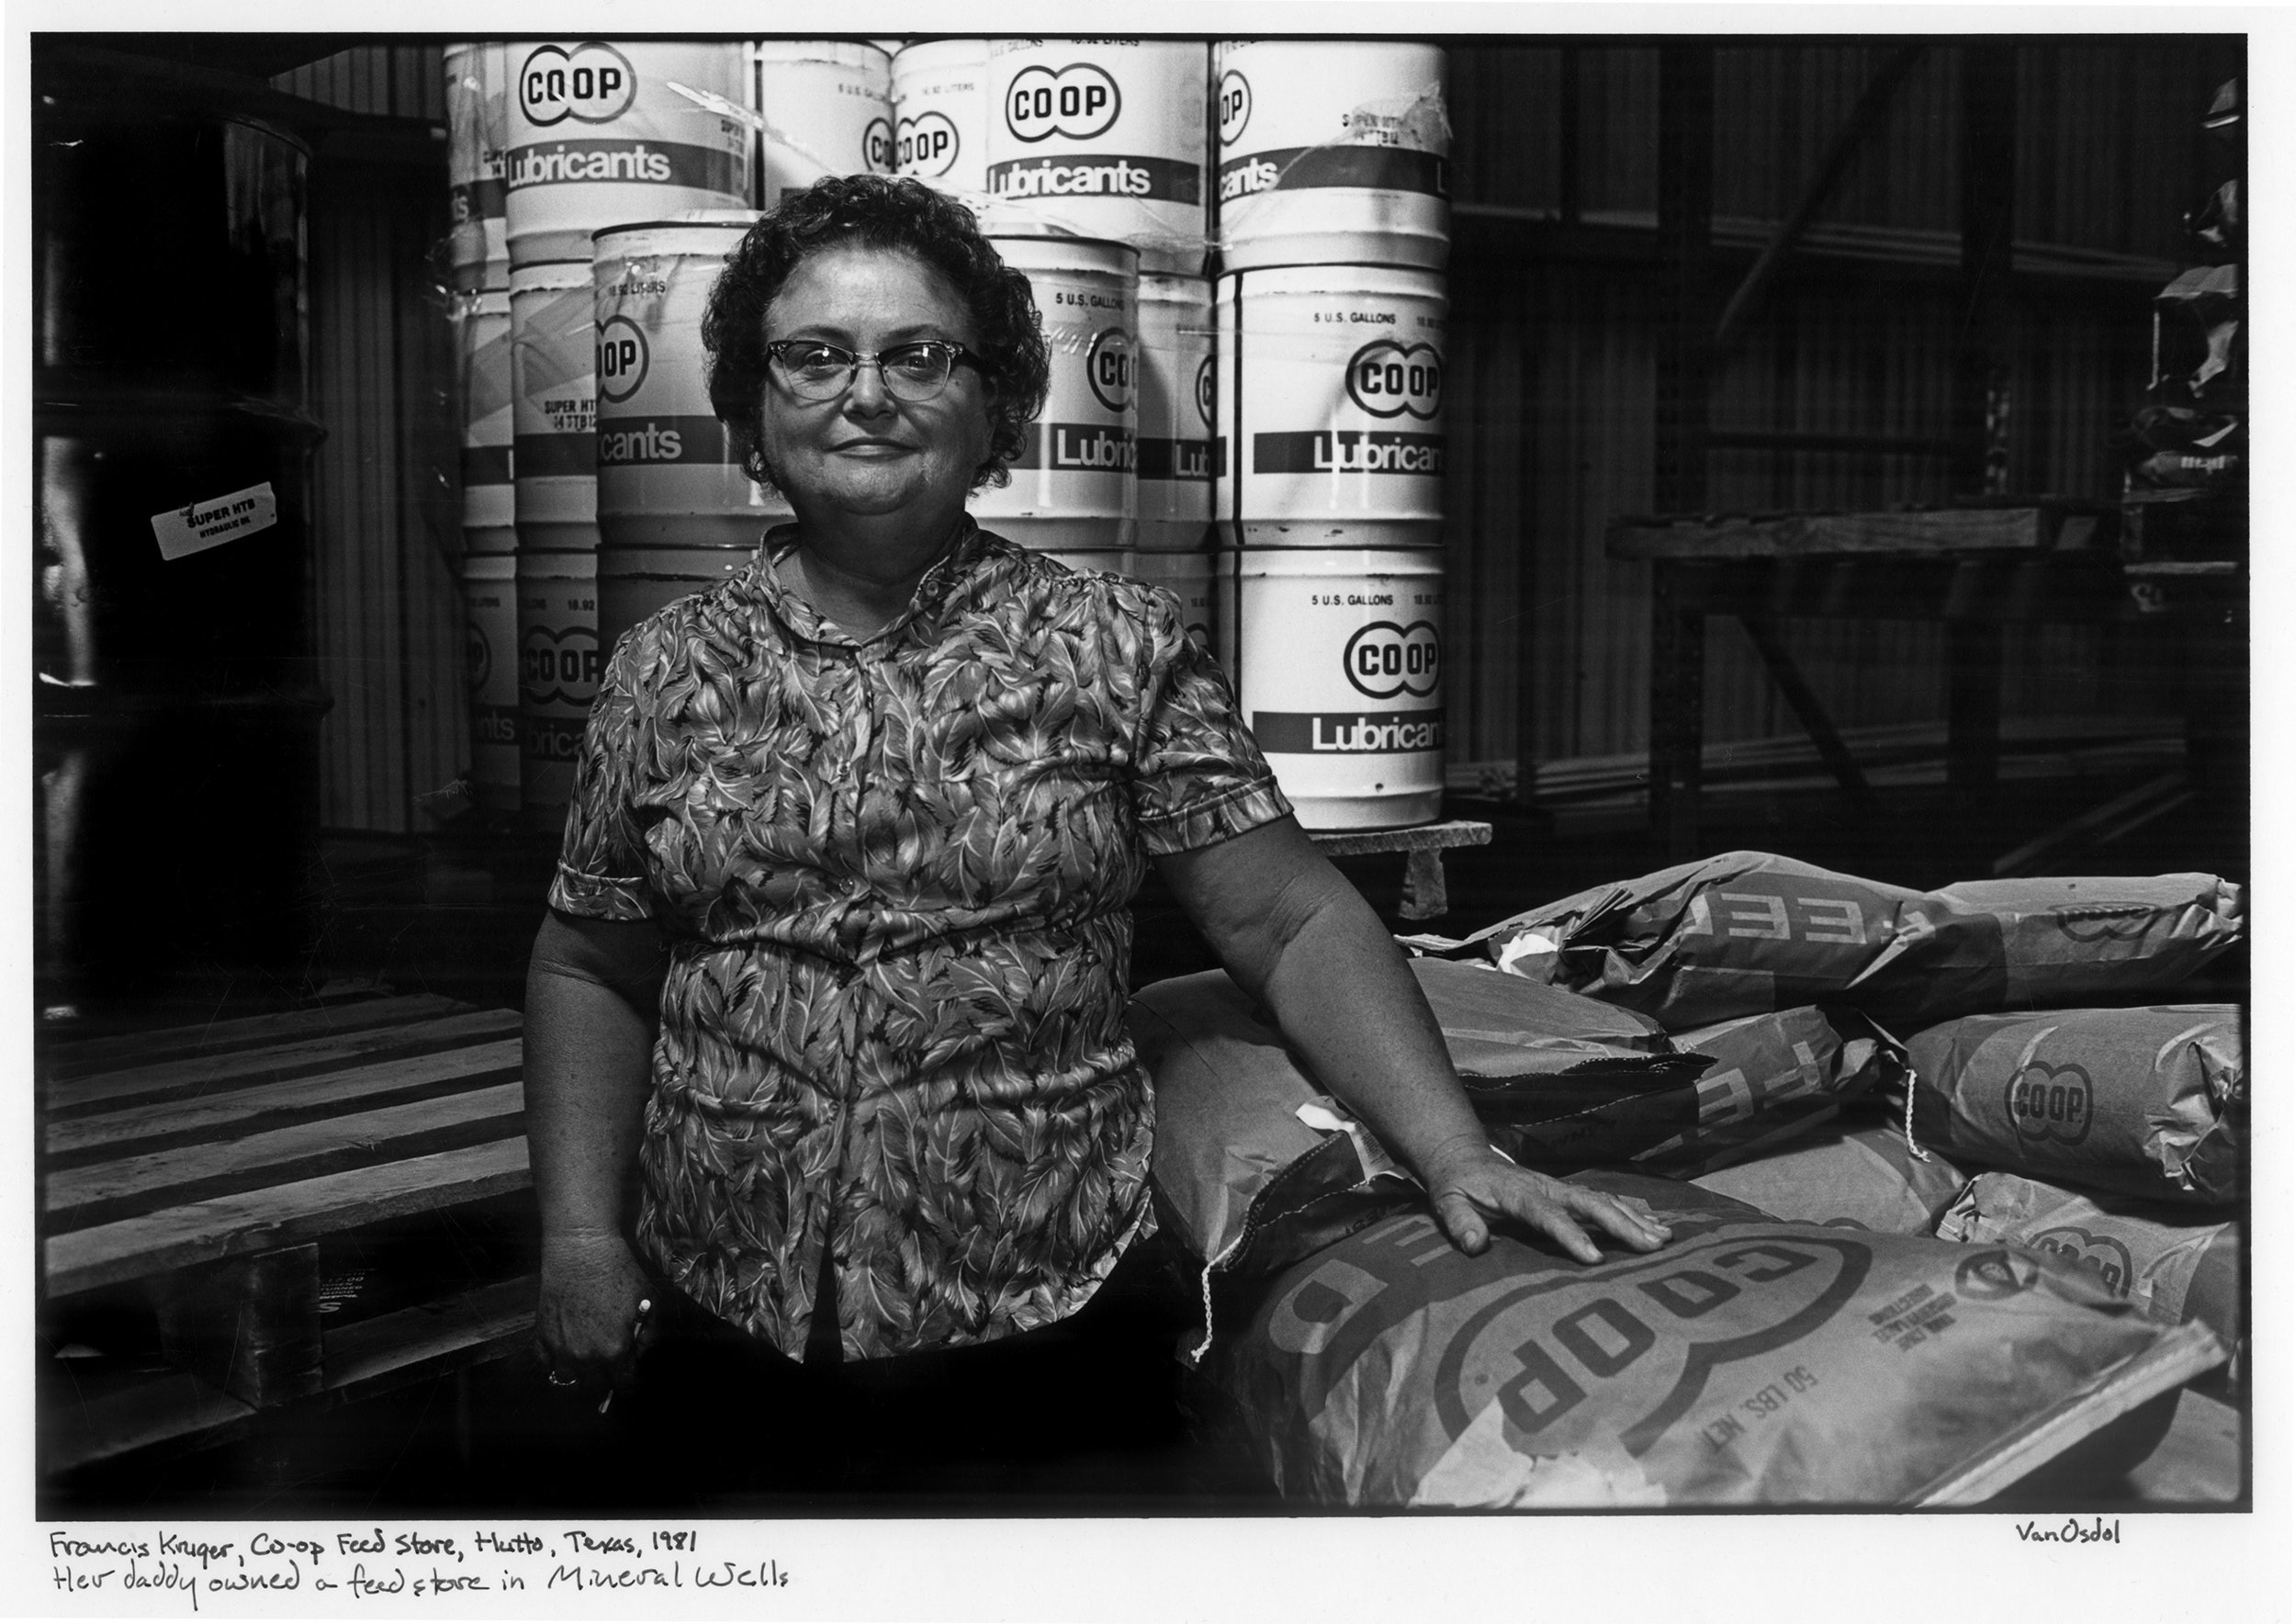 Fraceis Druger, Coop Feed Store, Hutton, Texas, 1981